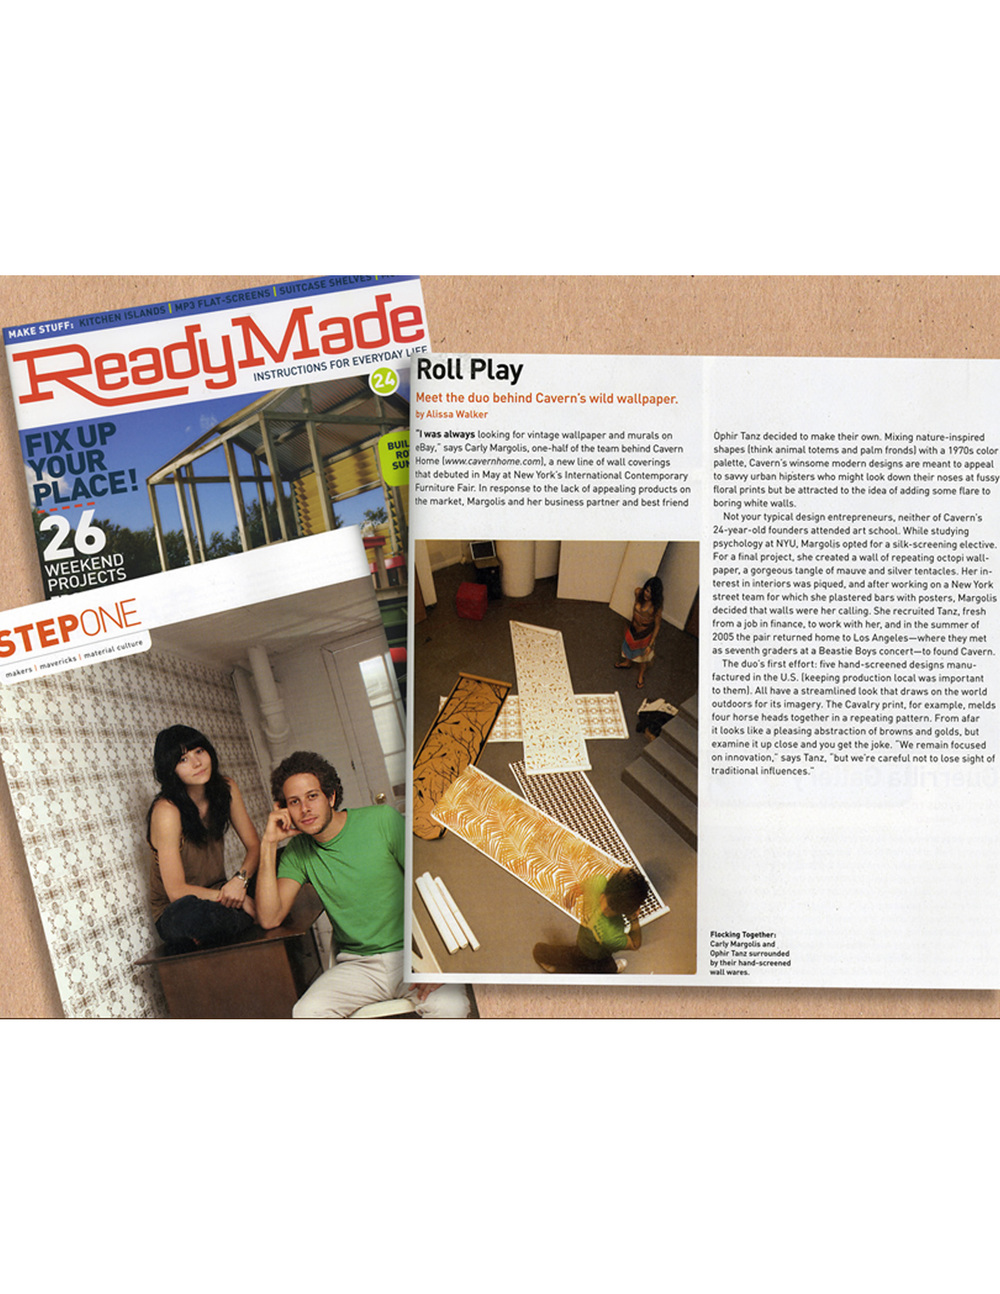 ReadyMade Magazine August 2006